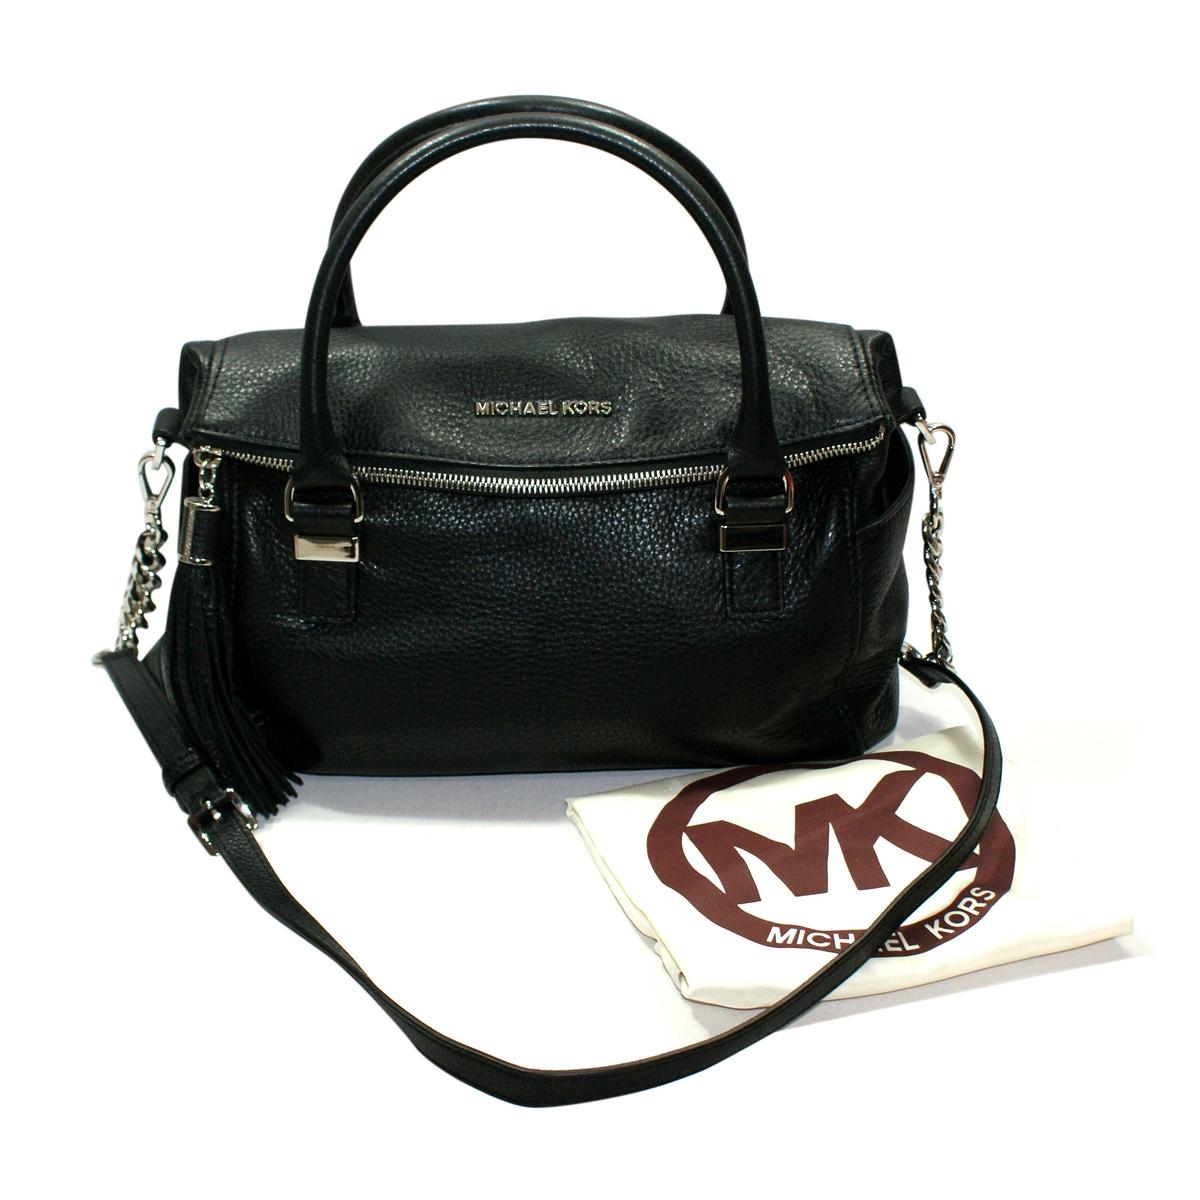 Michael Kors Weston Genuine Leather Medium Satchel